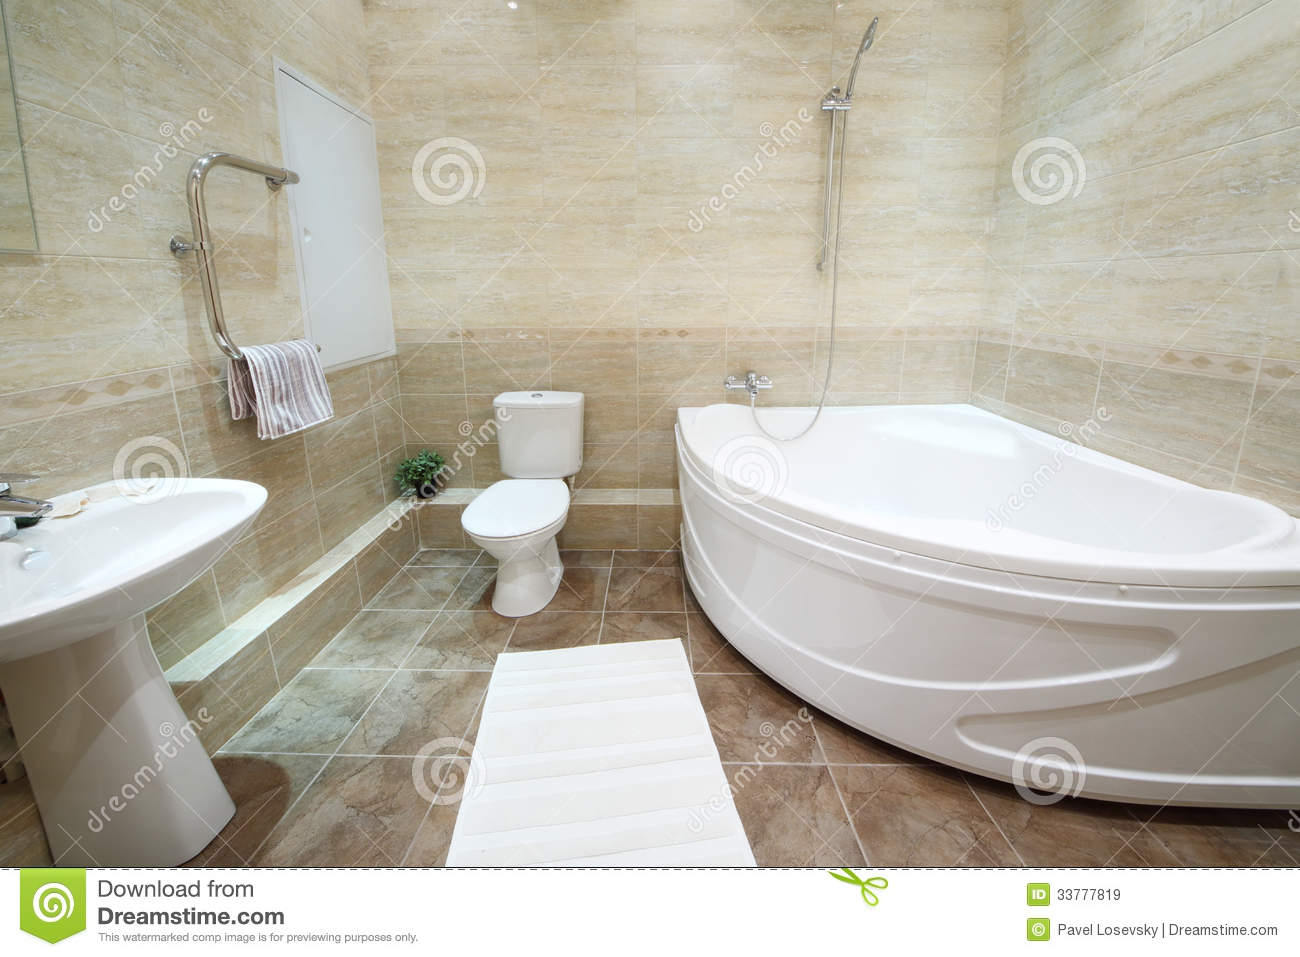 Light And Clean Bathroom With Toilet With Tiles On Floor Stock Image ...